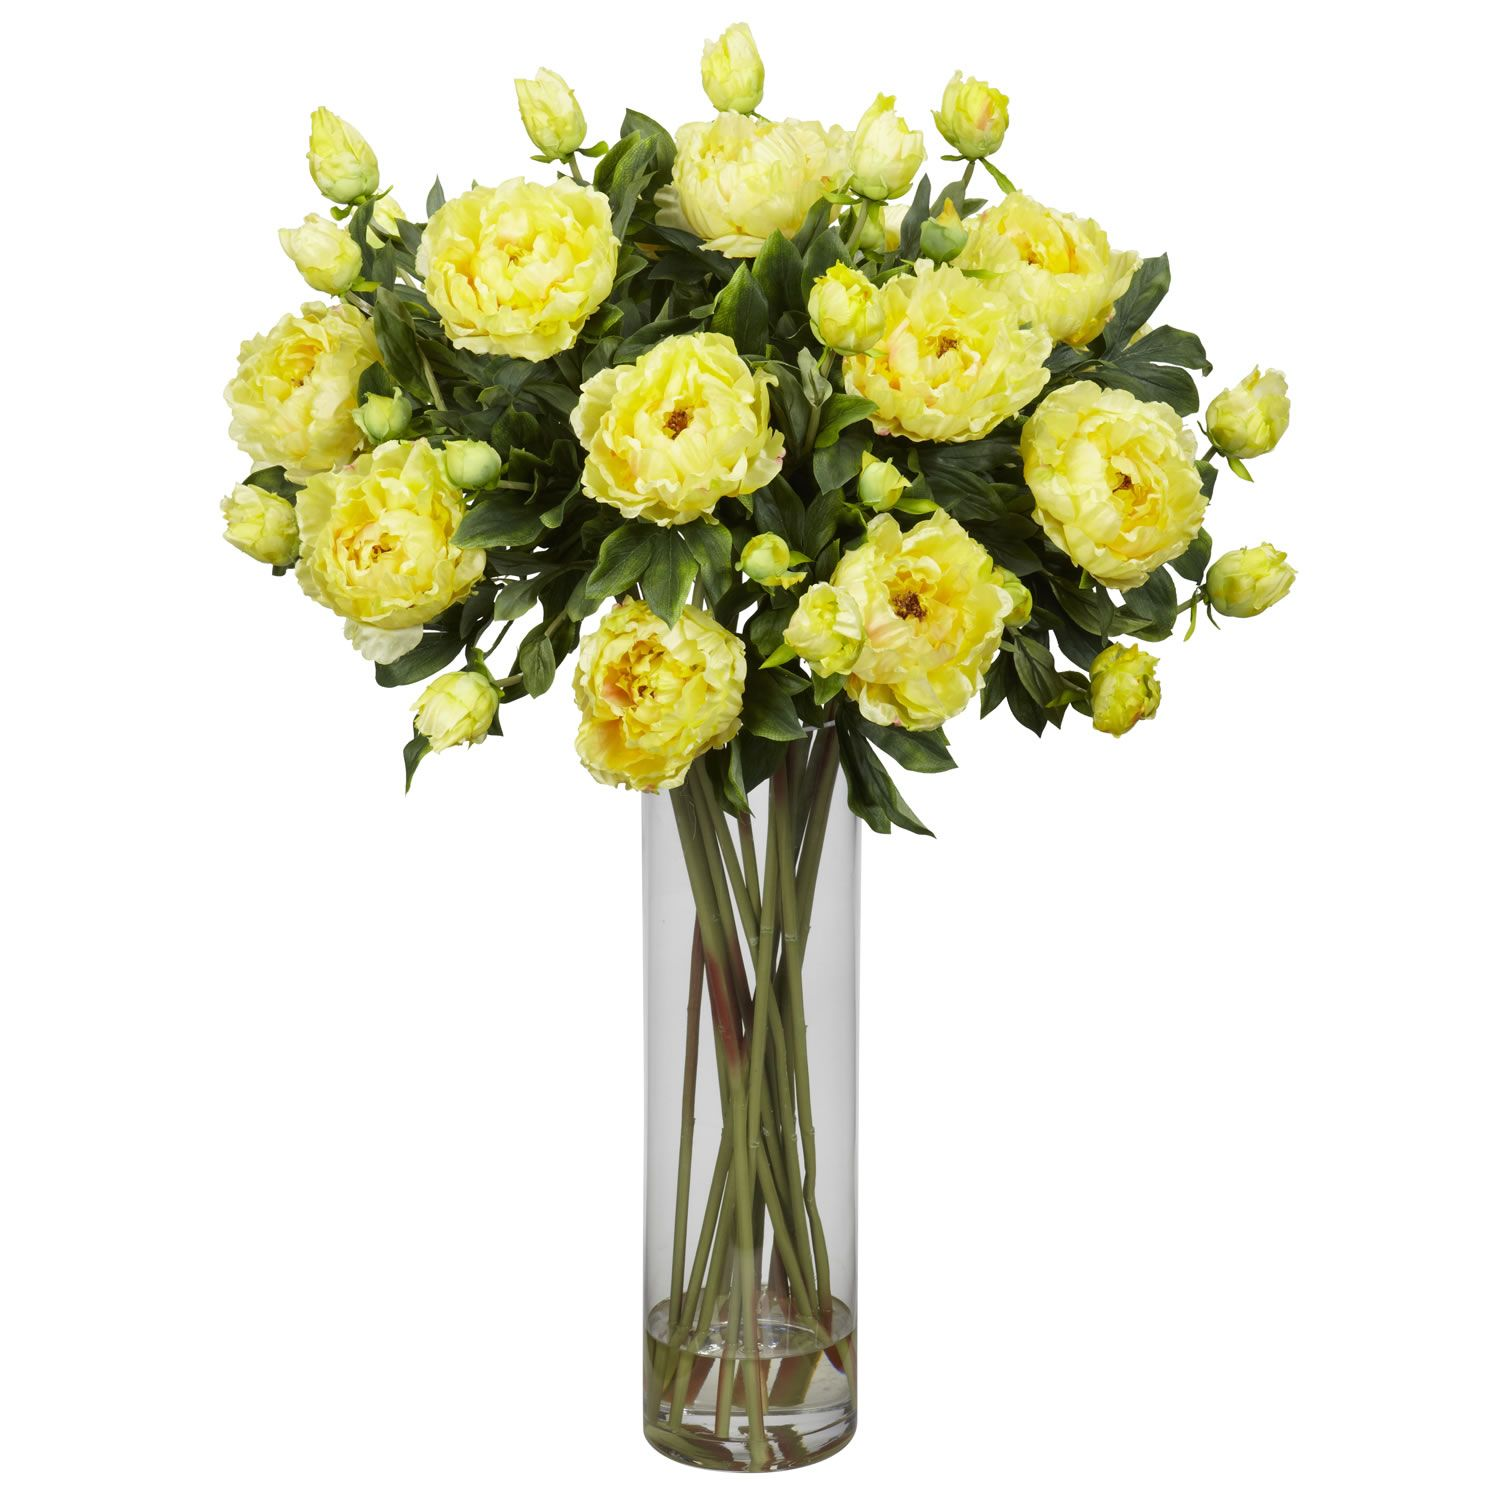 Fake Floral Arrangements For Your Table Centerpiece Yellow Tulip Fake Floral Arrangements With